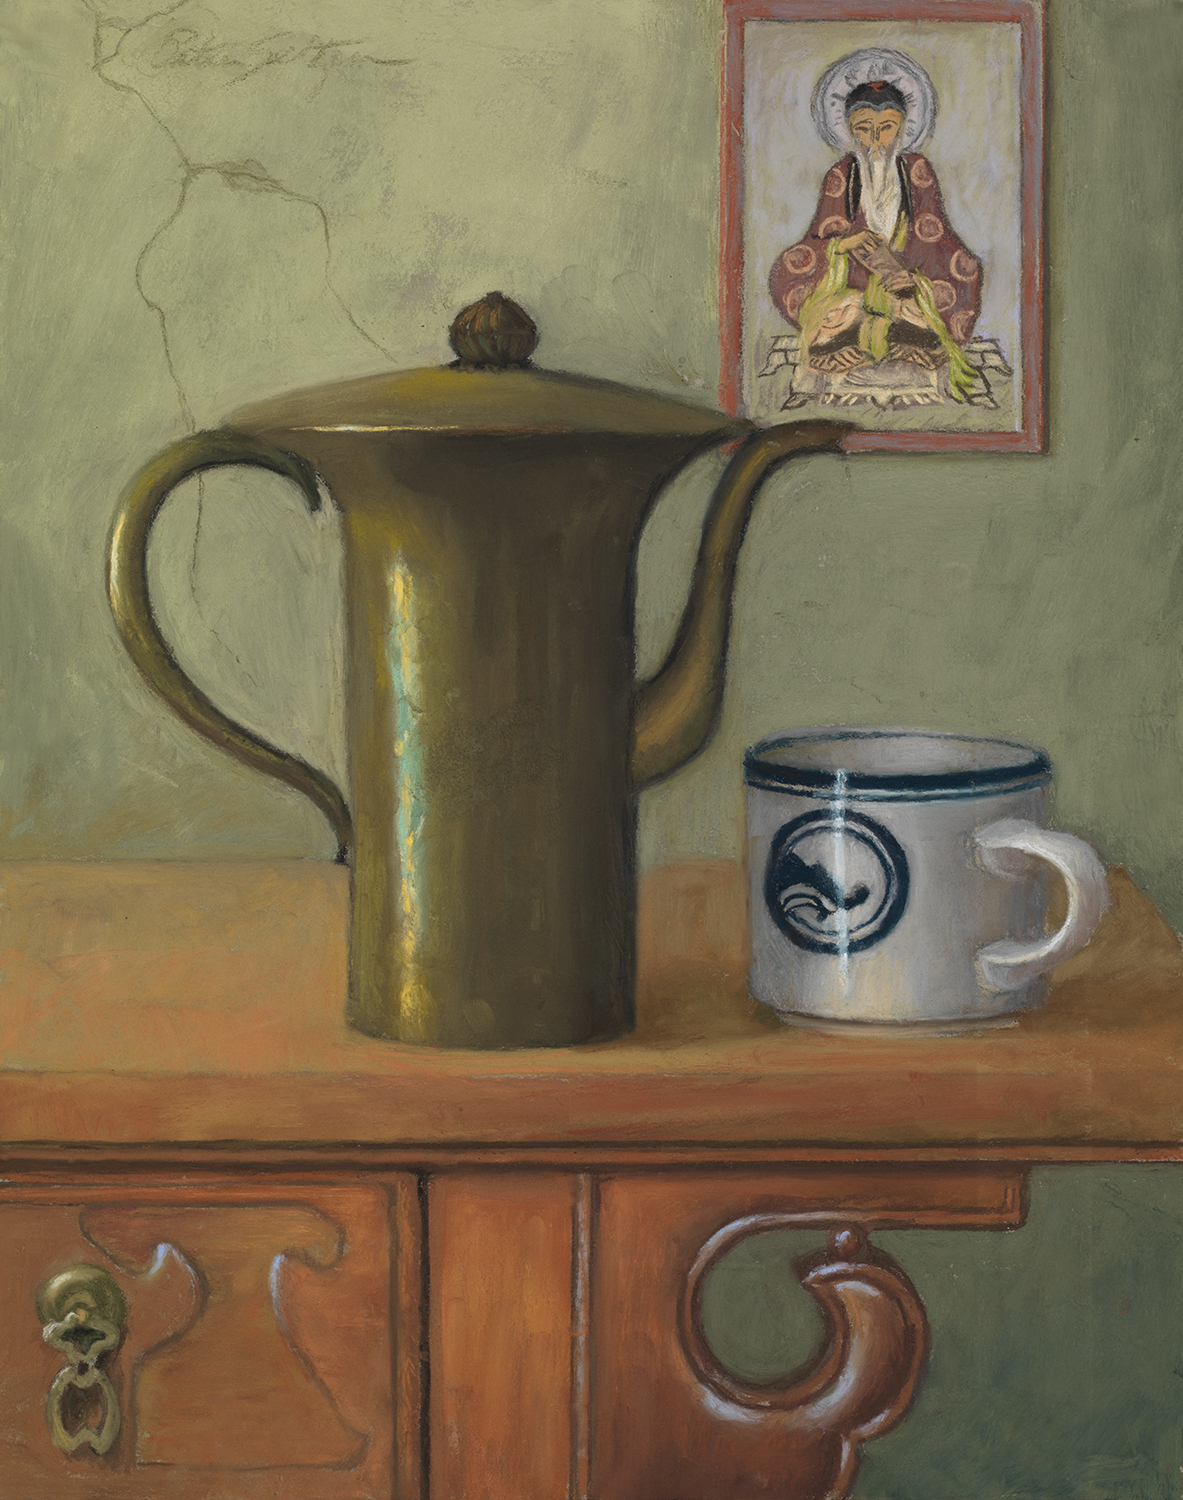 Peter Seltzer,  Tea for Tzu , 14 x 11 inches, unframed. (Part of NHPCC's Permanent Collection)